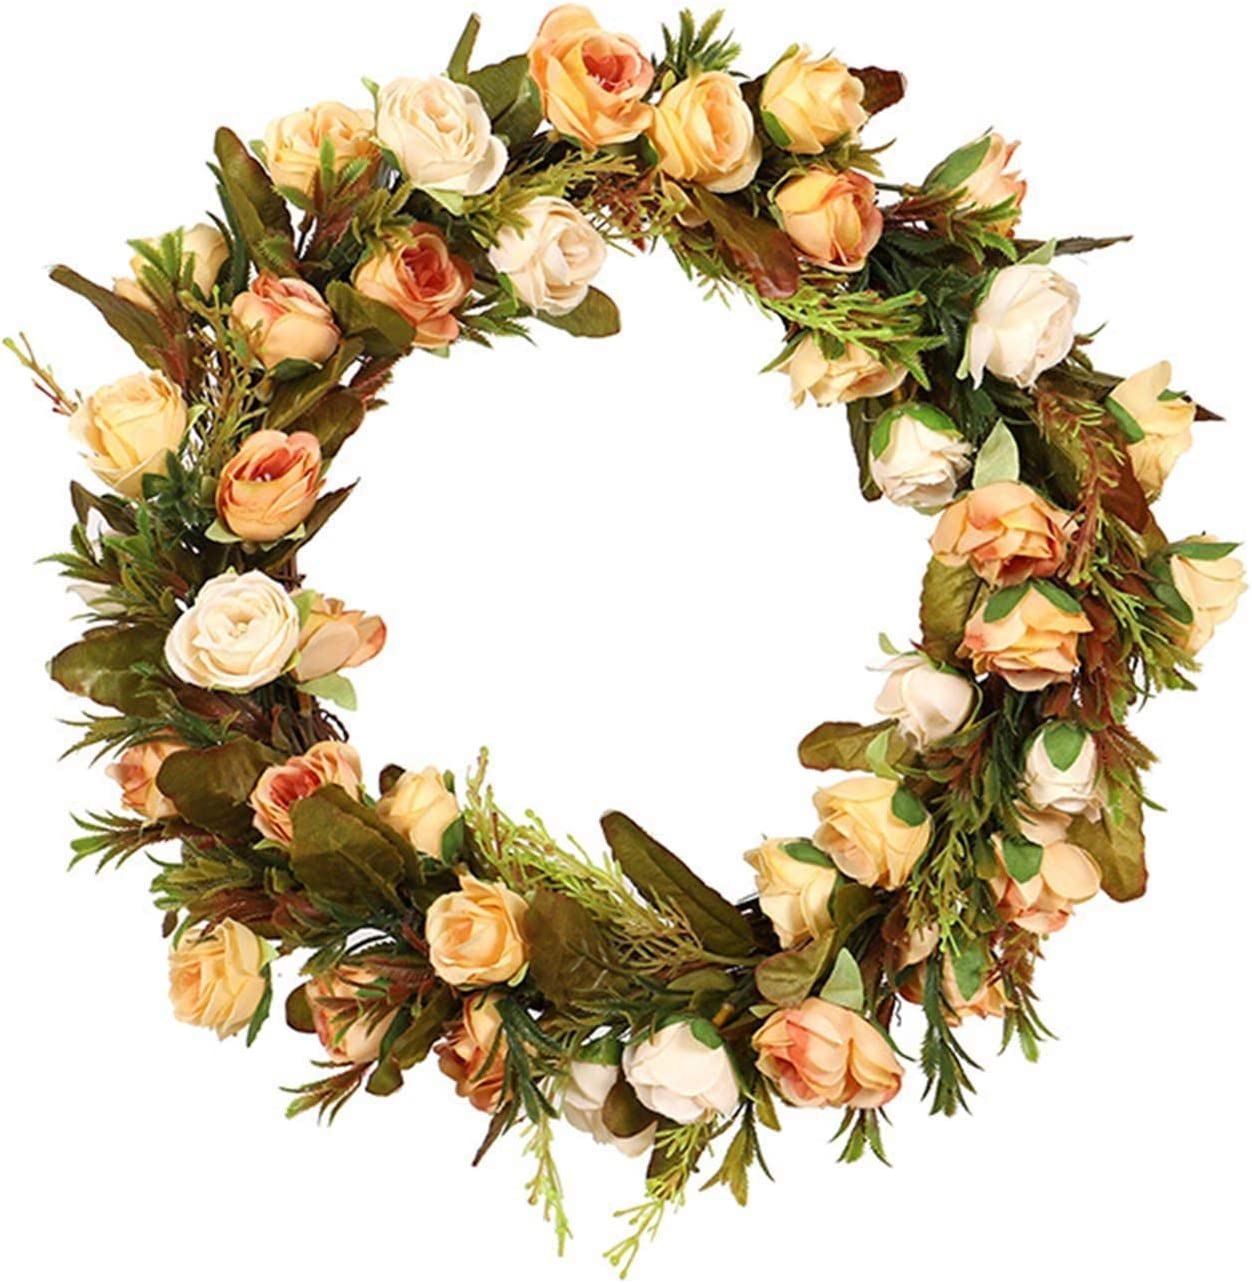 Spring Flower Wreath for Front Columbus Mall Hangi Wall National uniform free shipping Door Peony Rose